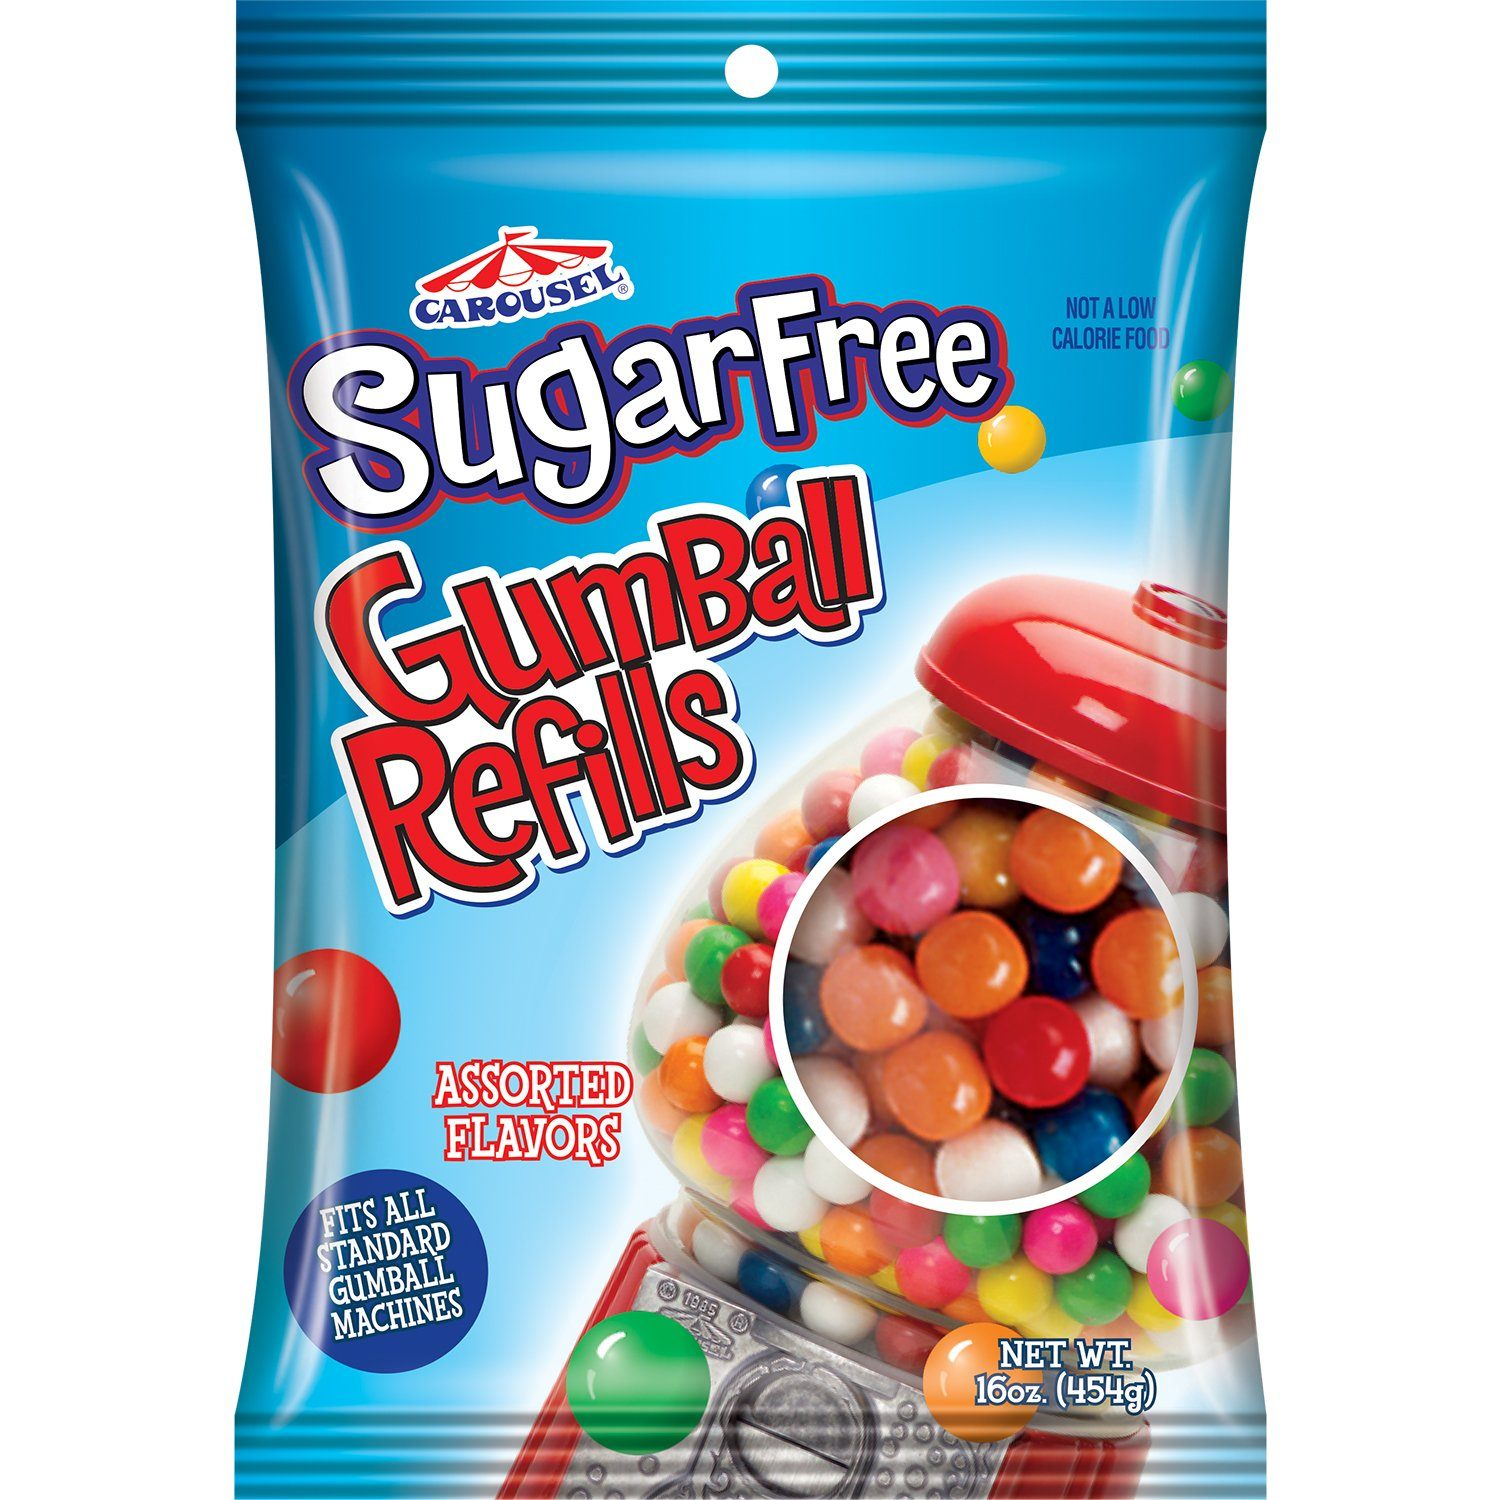 Carousel Gumball Machines and Refills Ford Gum & Machine Sugar Free Gumball Refill 16 Ounce